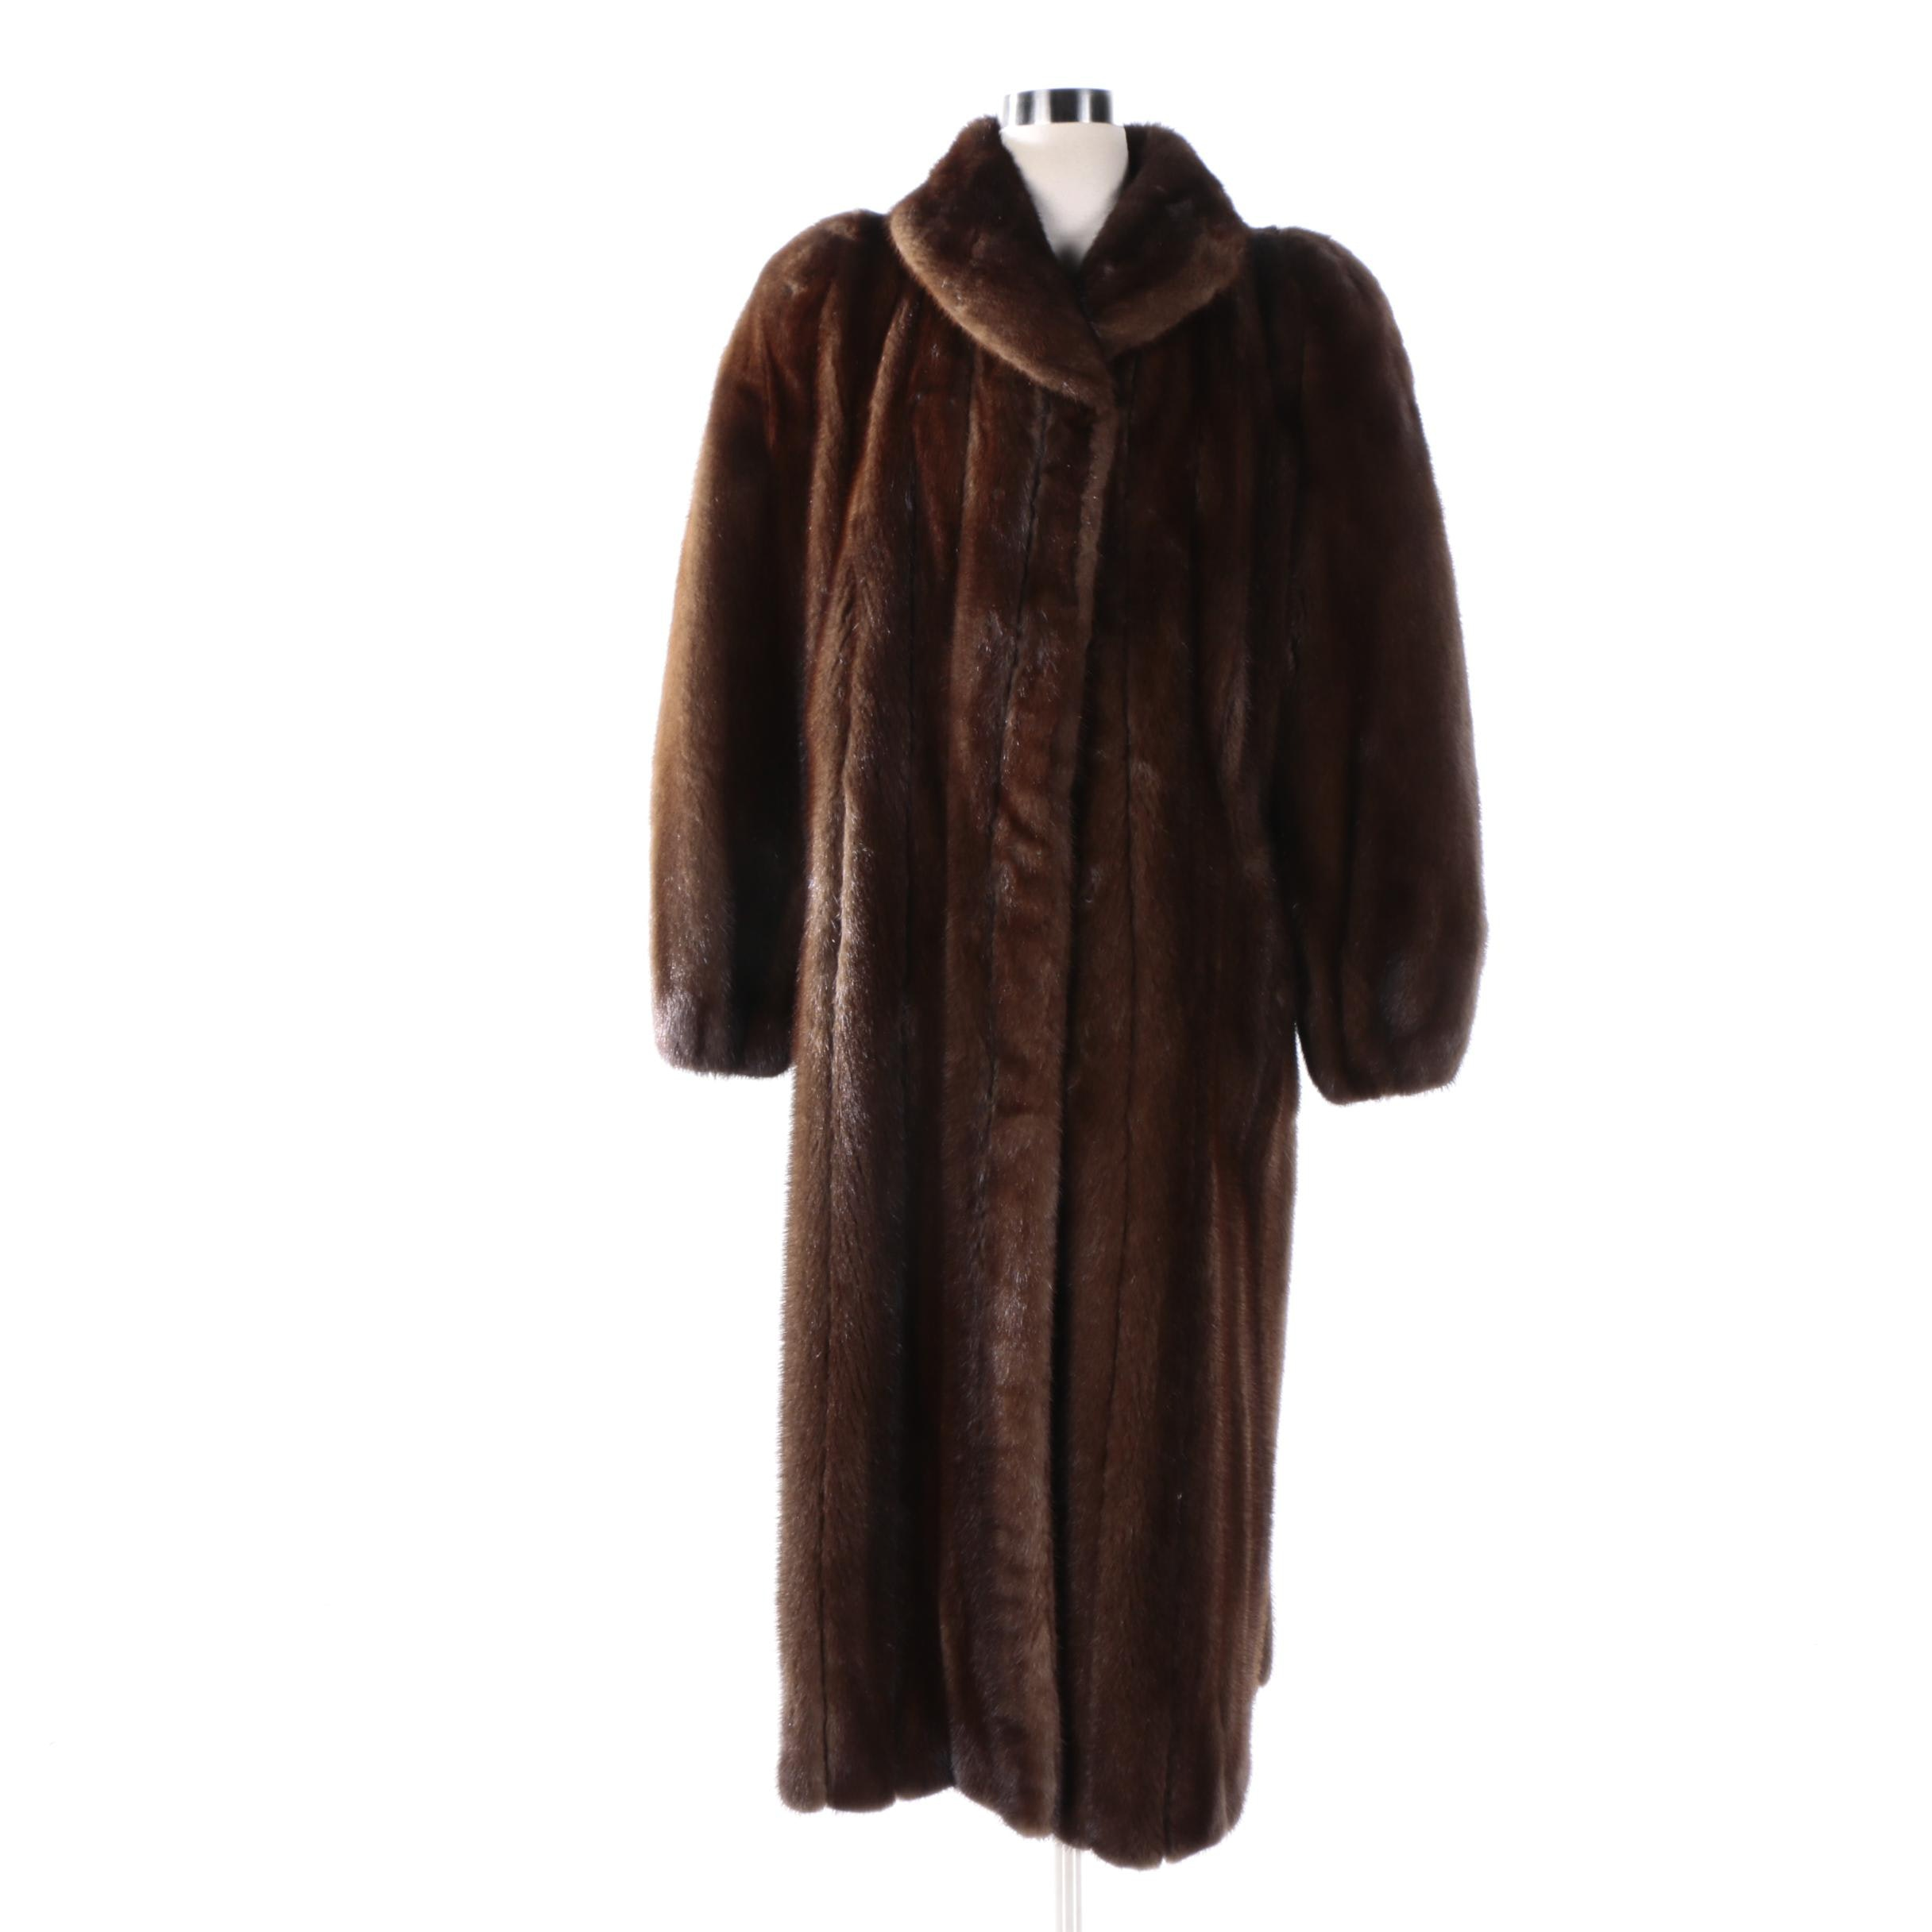 Women's Peter Duffy New York Brown Mink Fur Coat